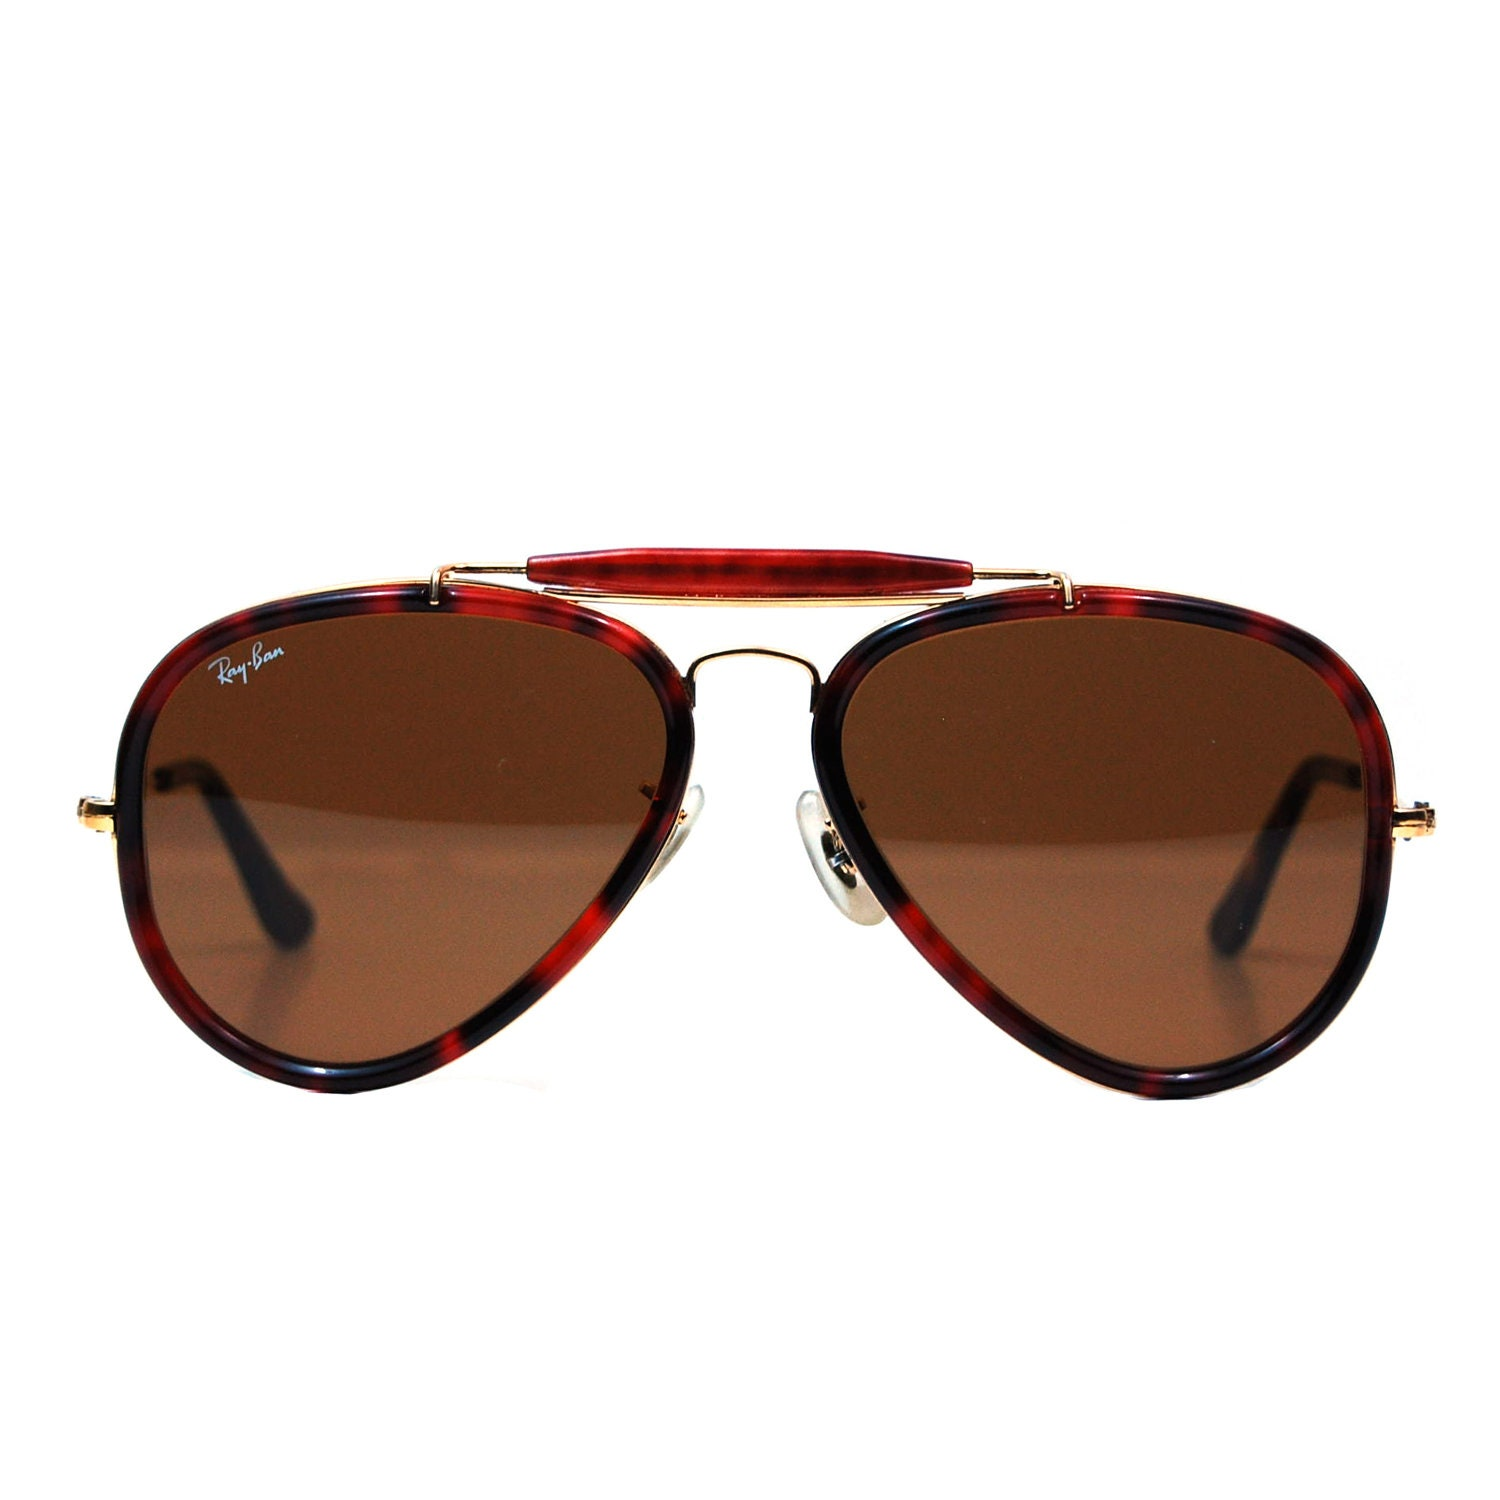 Vintage Ray Ban Aviator Sunglasses Sale Money In The